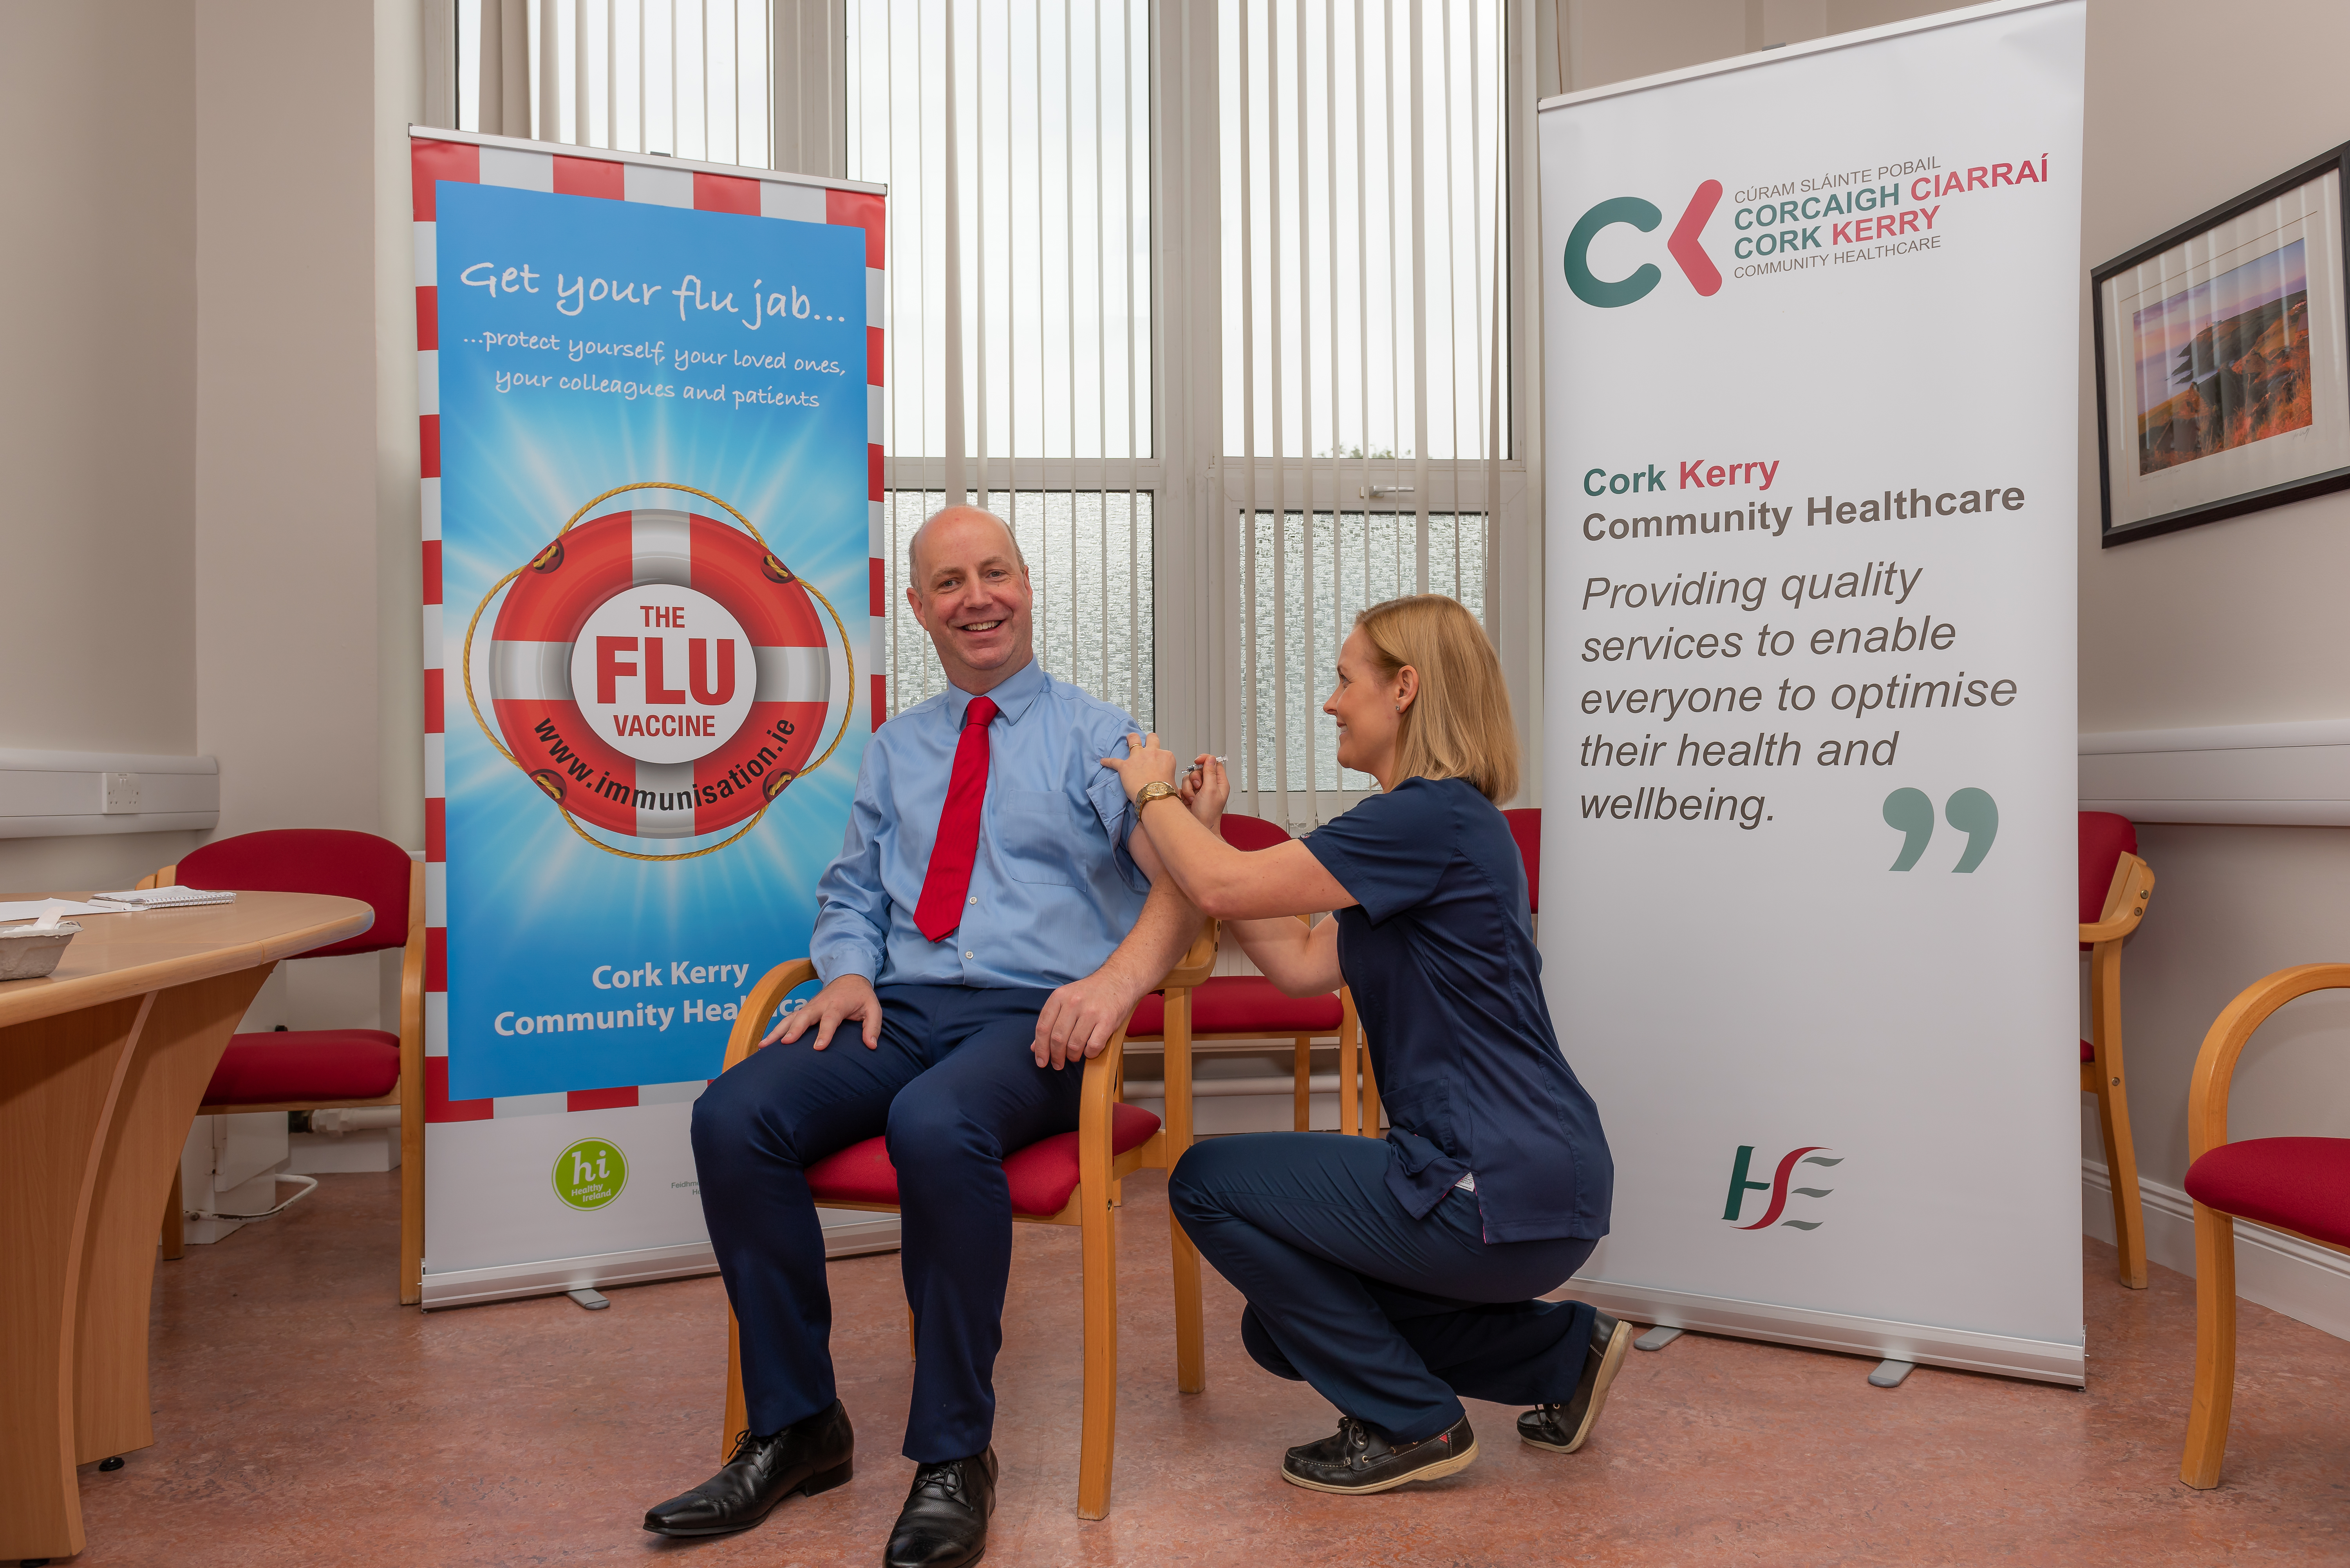 Get the vaccine, not the flu – Daly : Jim Daly TD